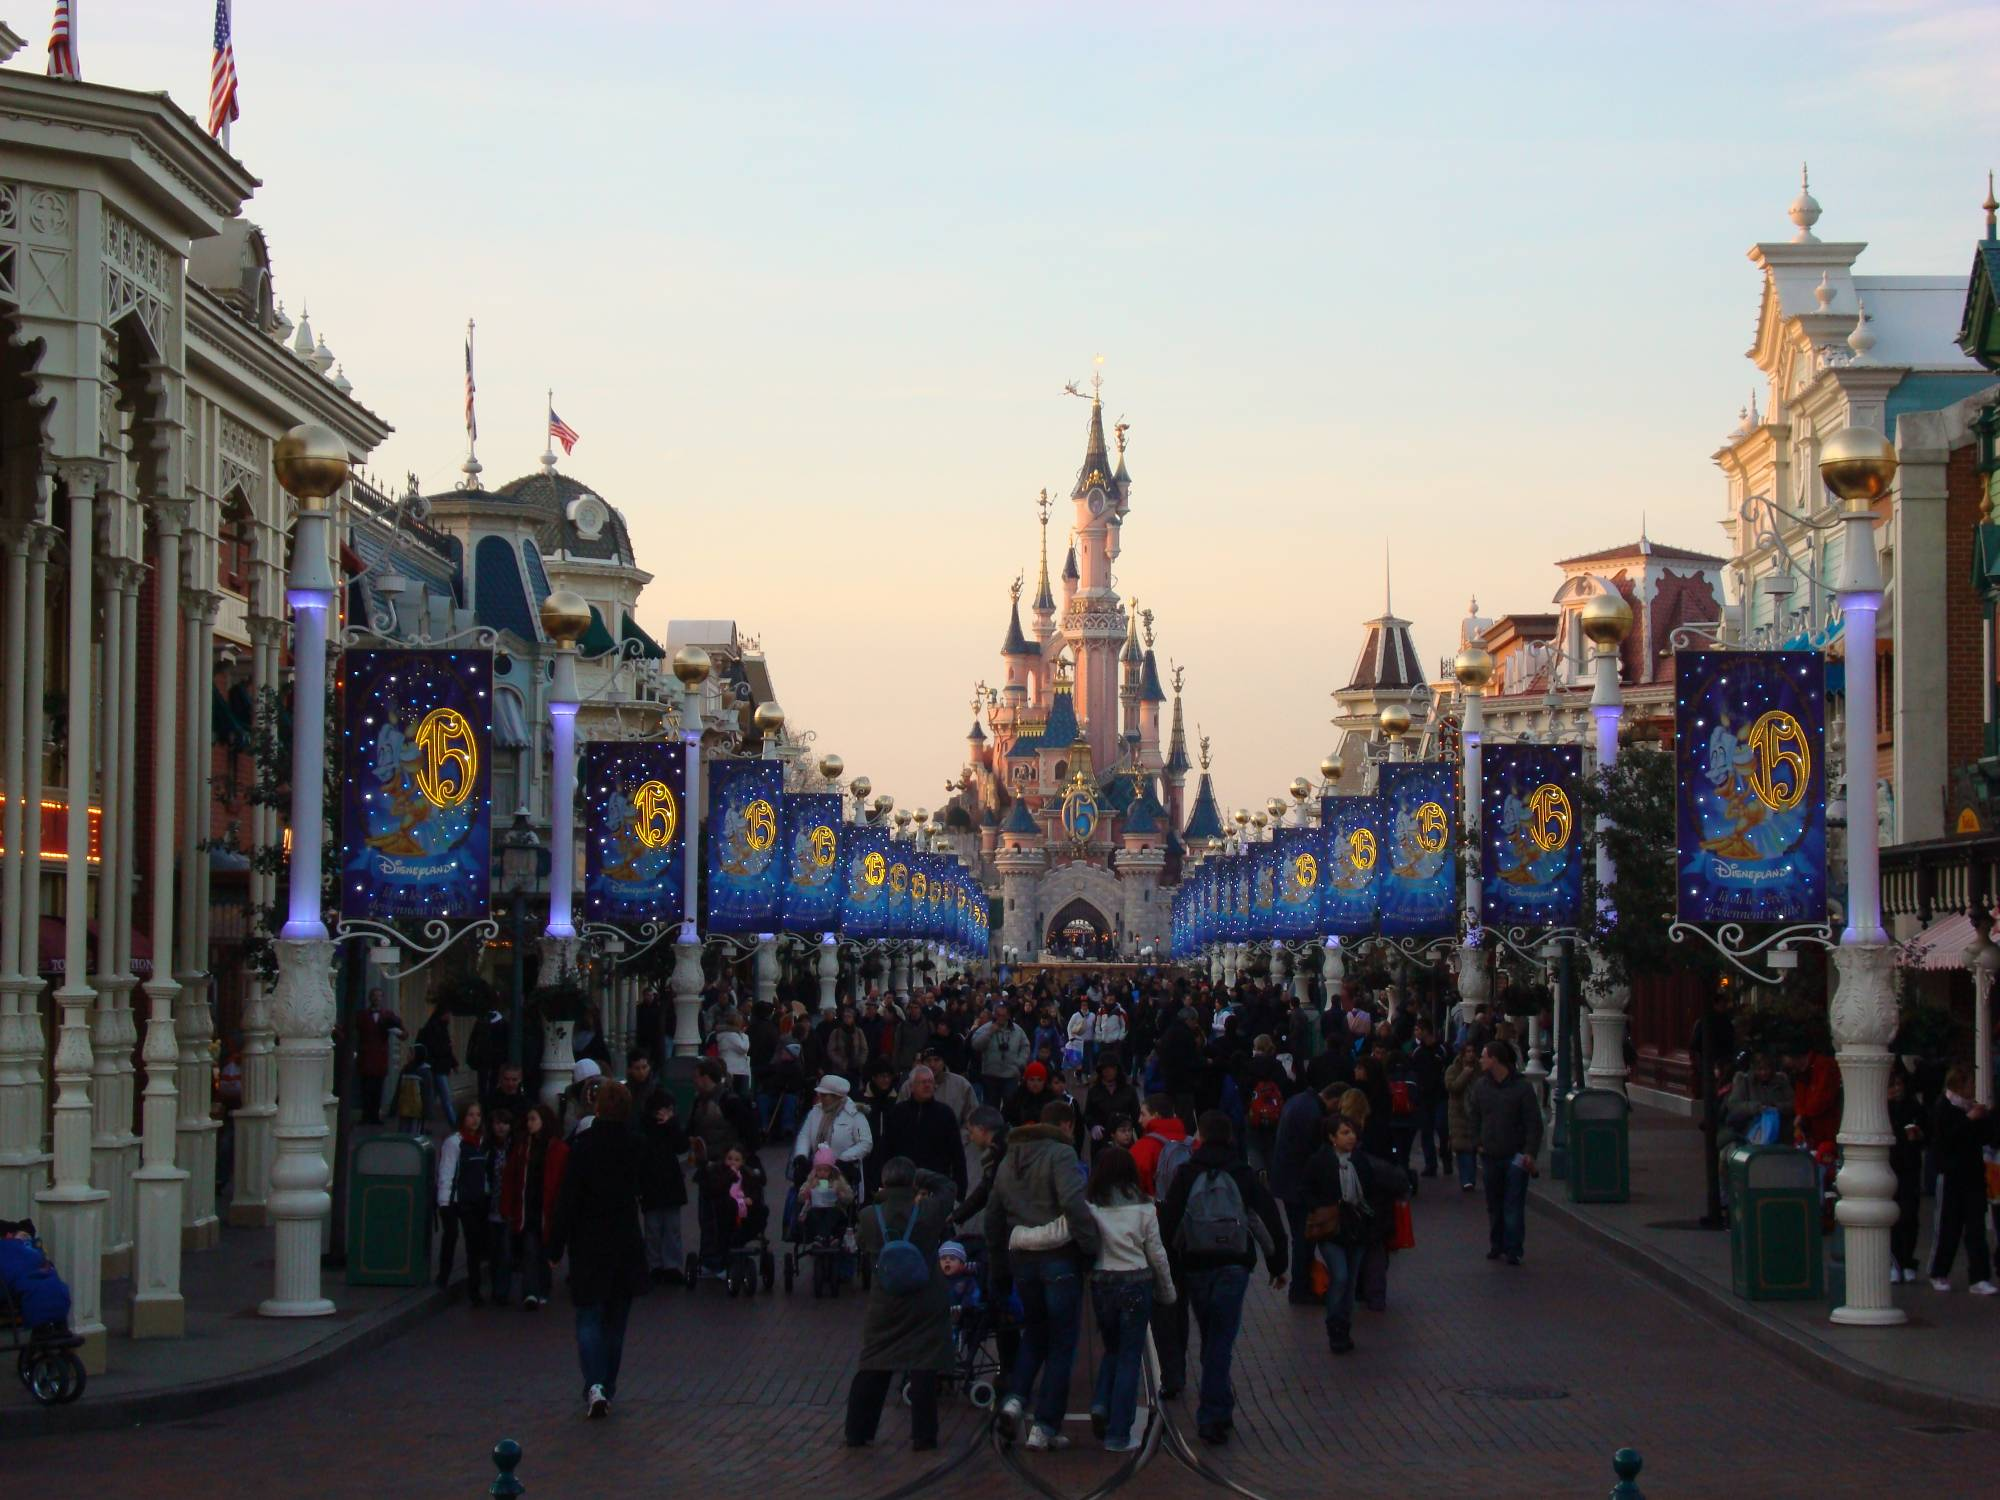 Disneyland Paris - Main Street USA at twilight